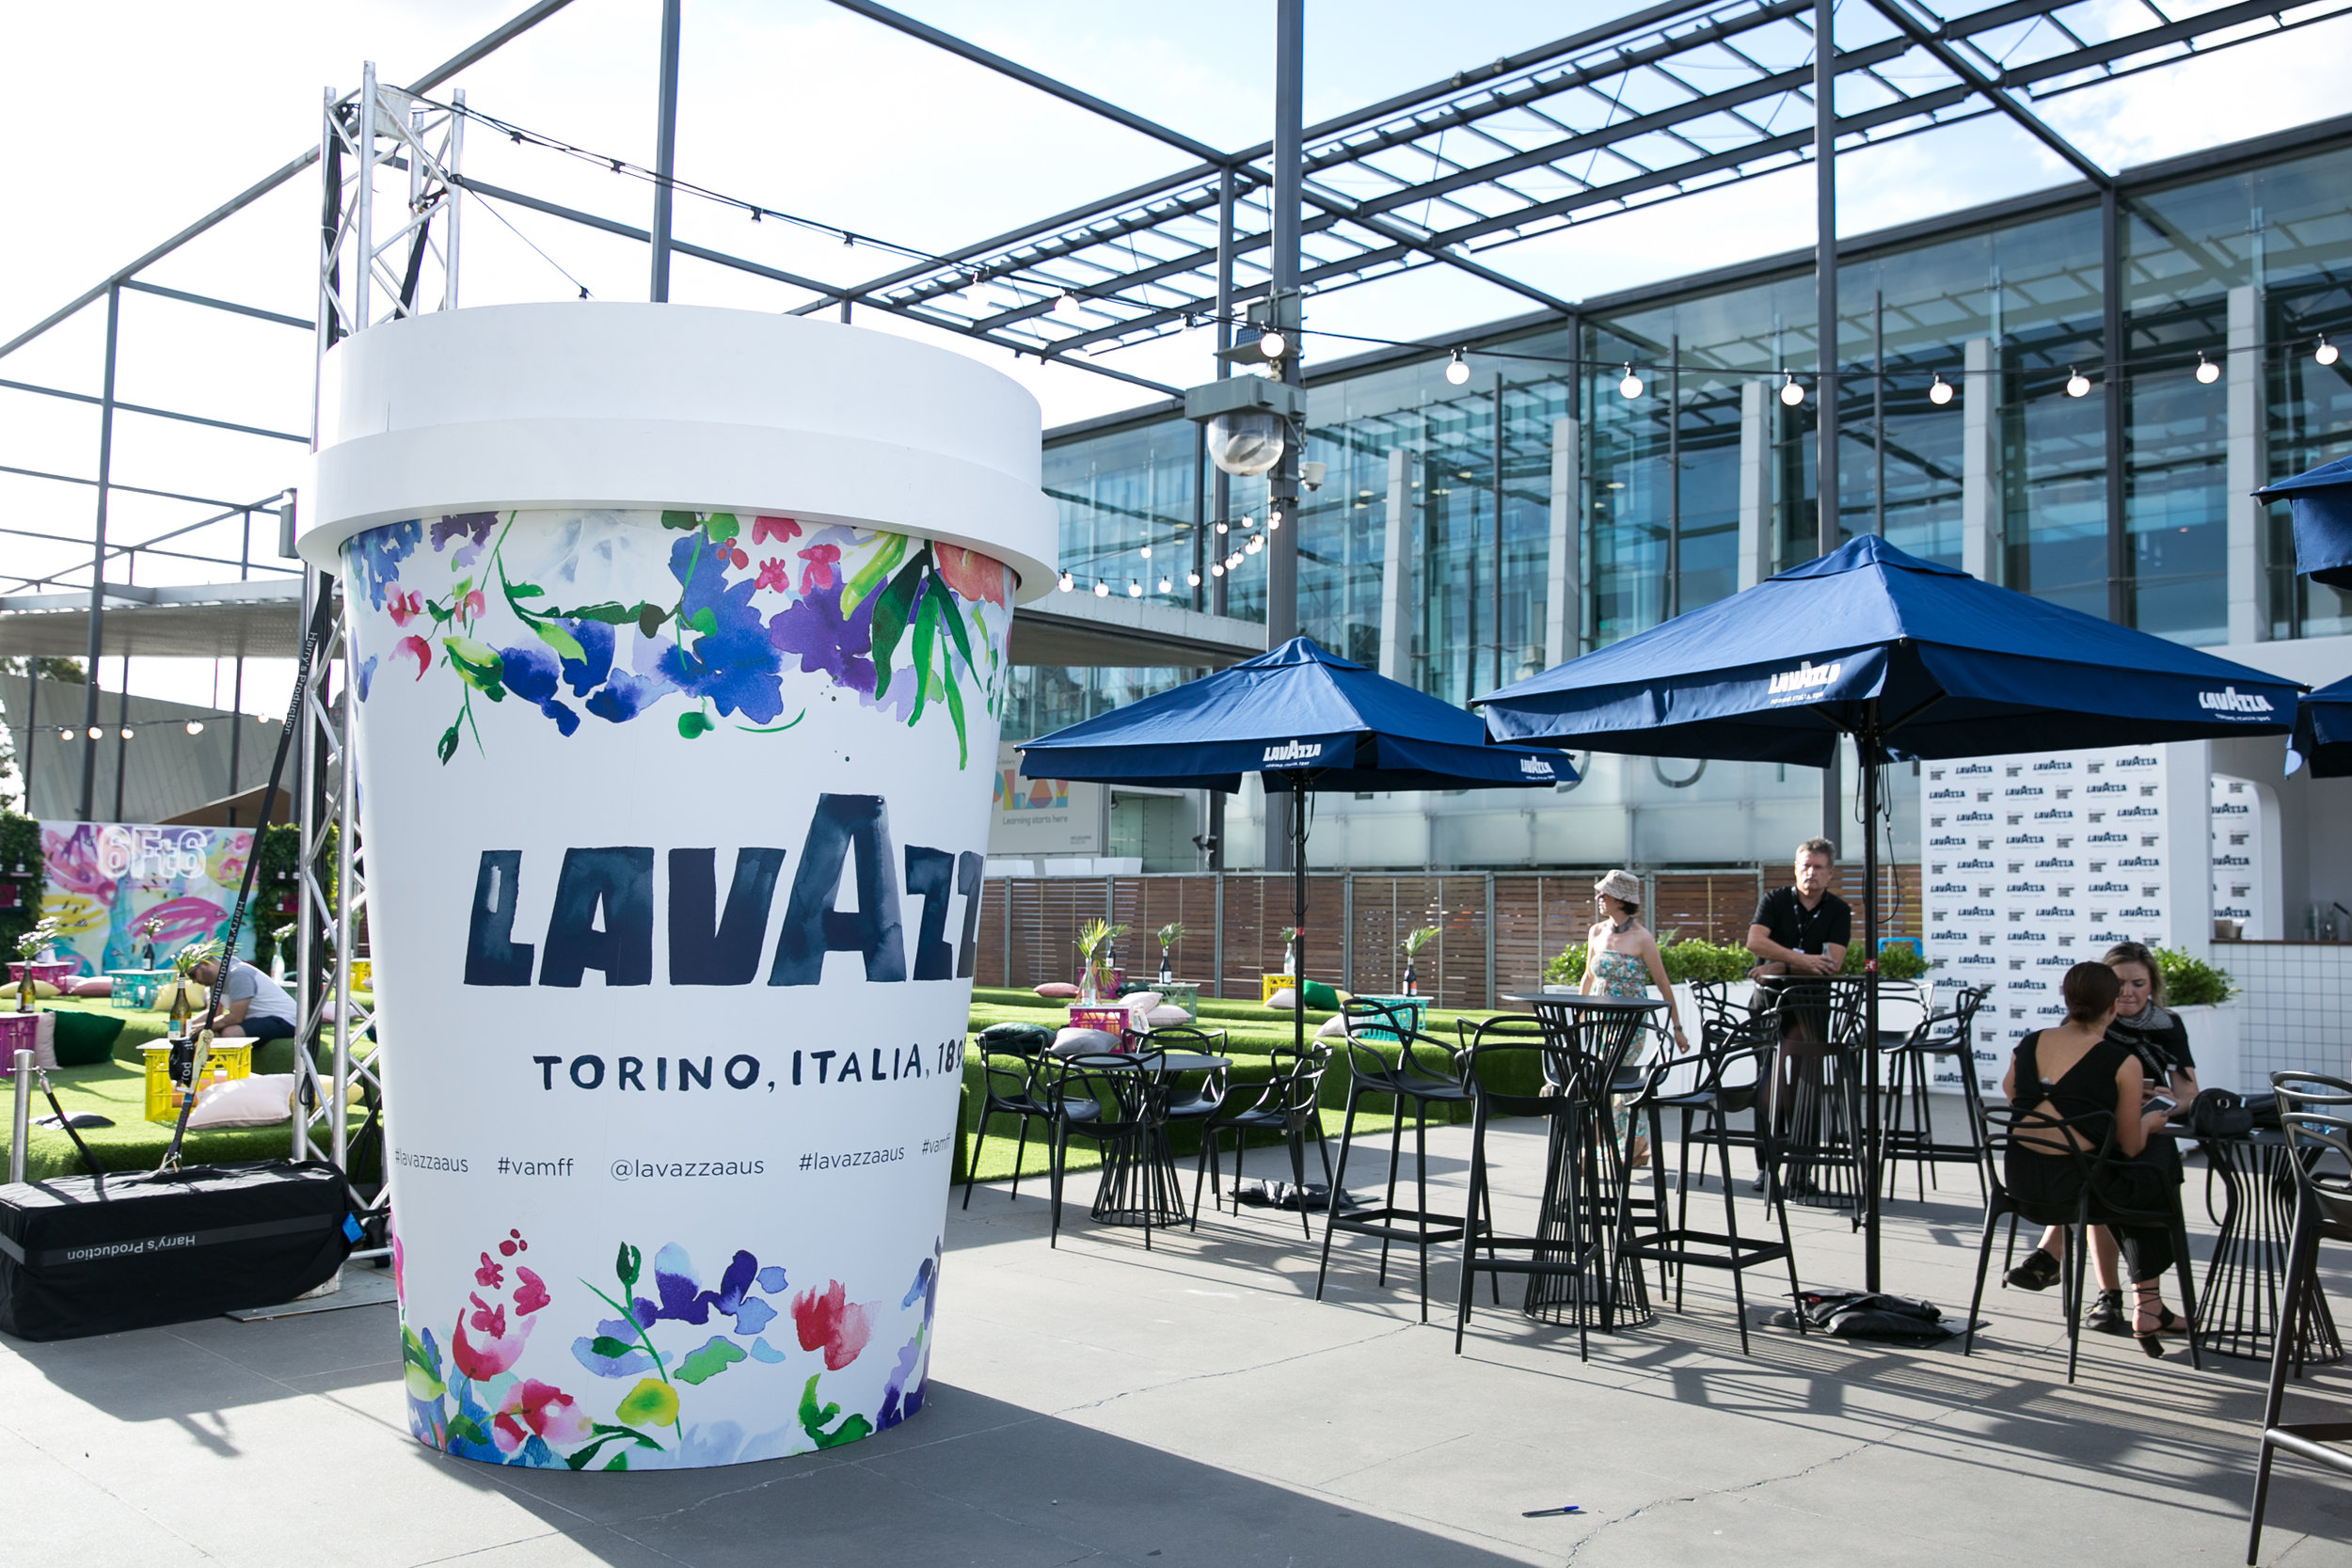 lavazza-vamff-2017-day-2-giant-coffee-cup-and-cafe.JPG